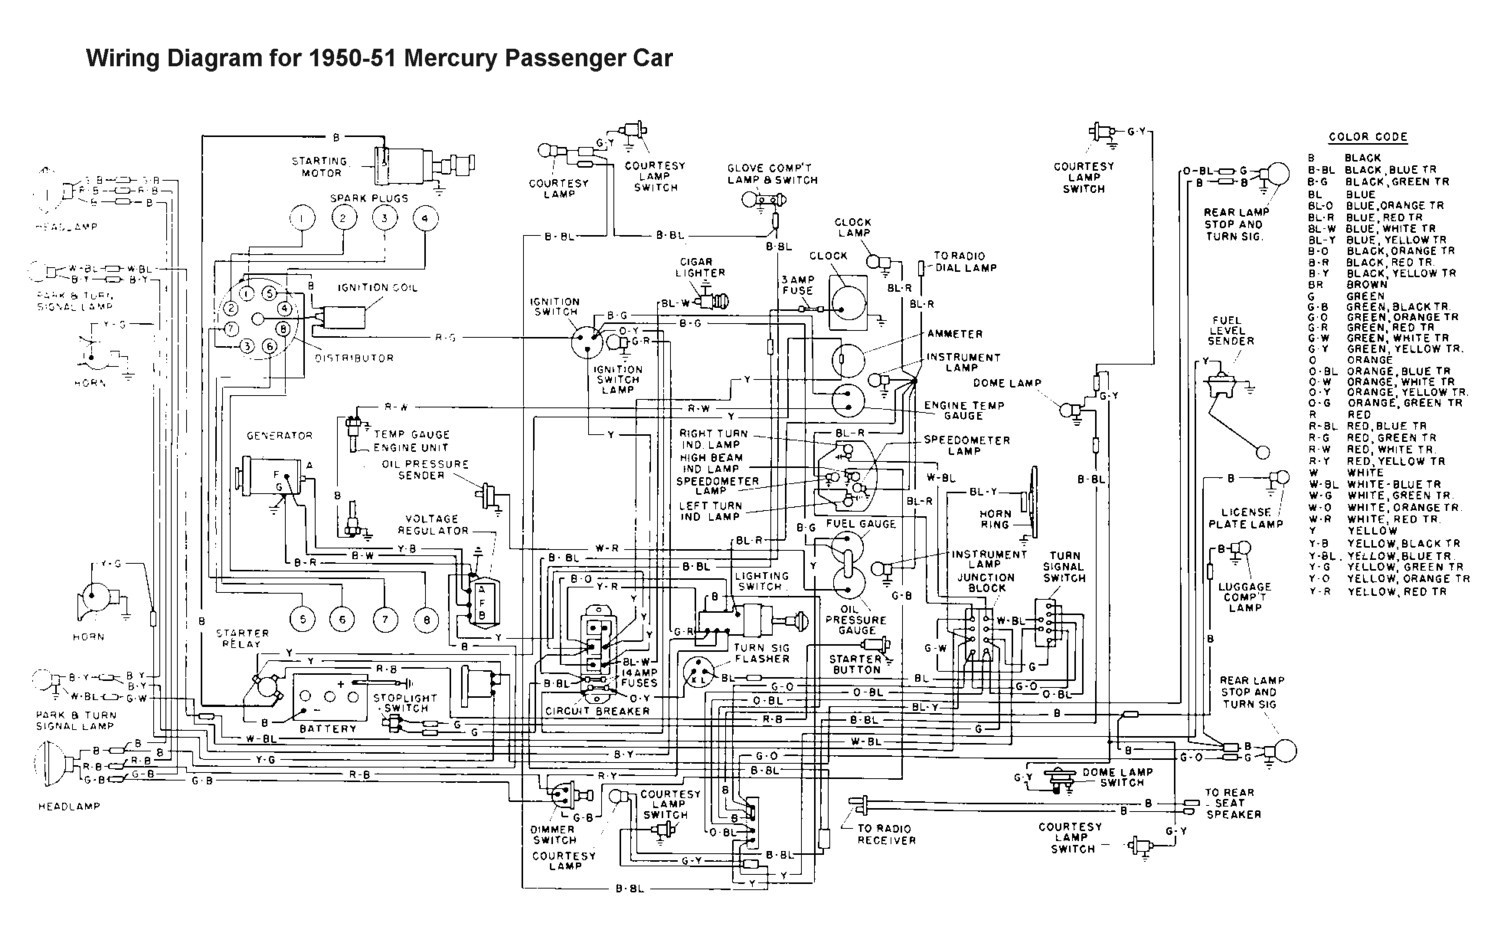 1939 mercury wiring diagram flathead engine electrical system circuit diagram maker